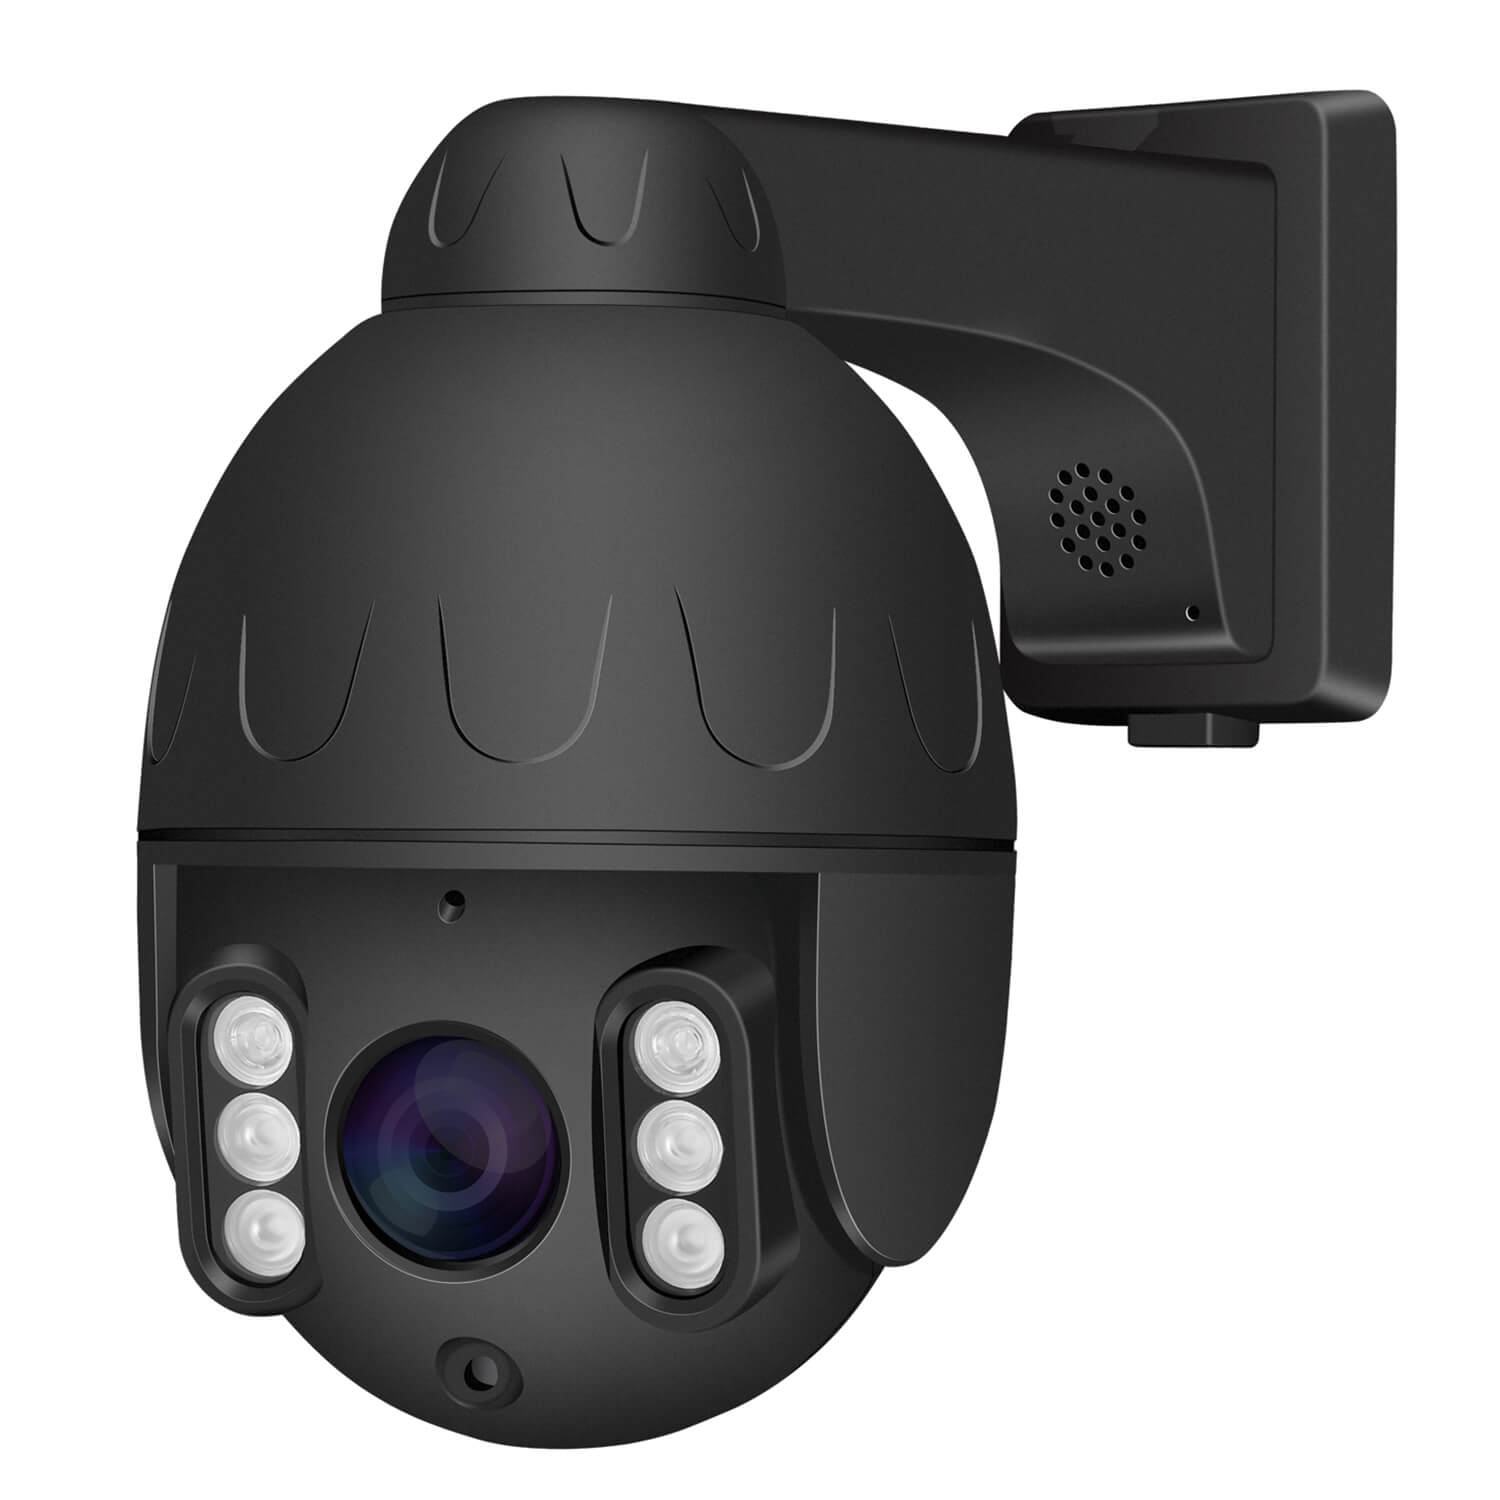 Black PTZ POE IP Security Dome Camera with 5X Optical Zoom